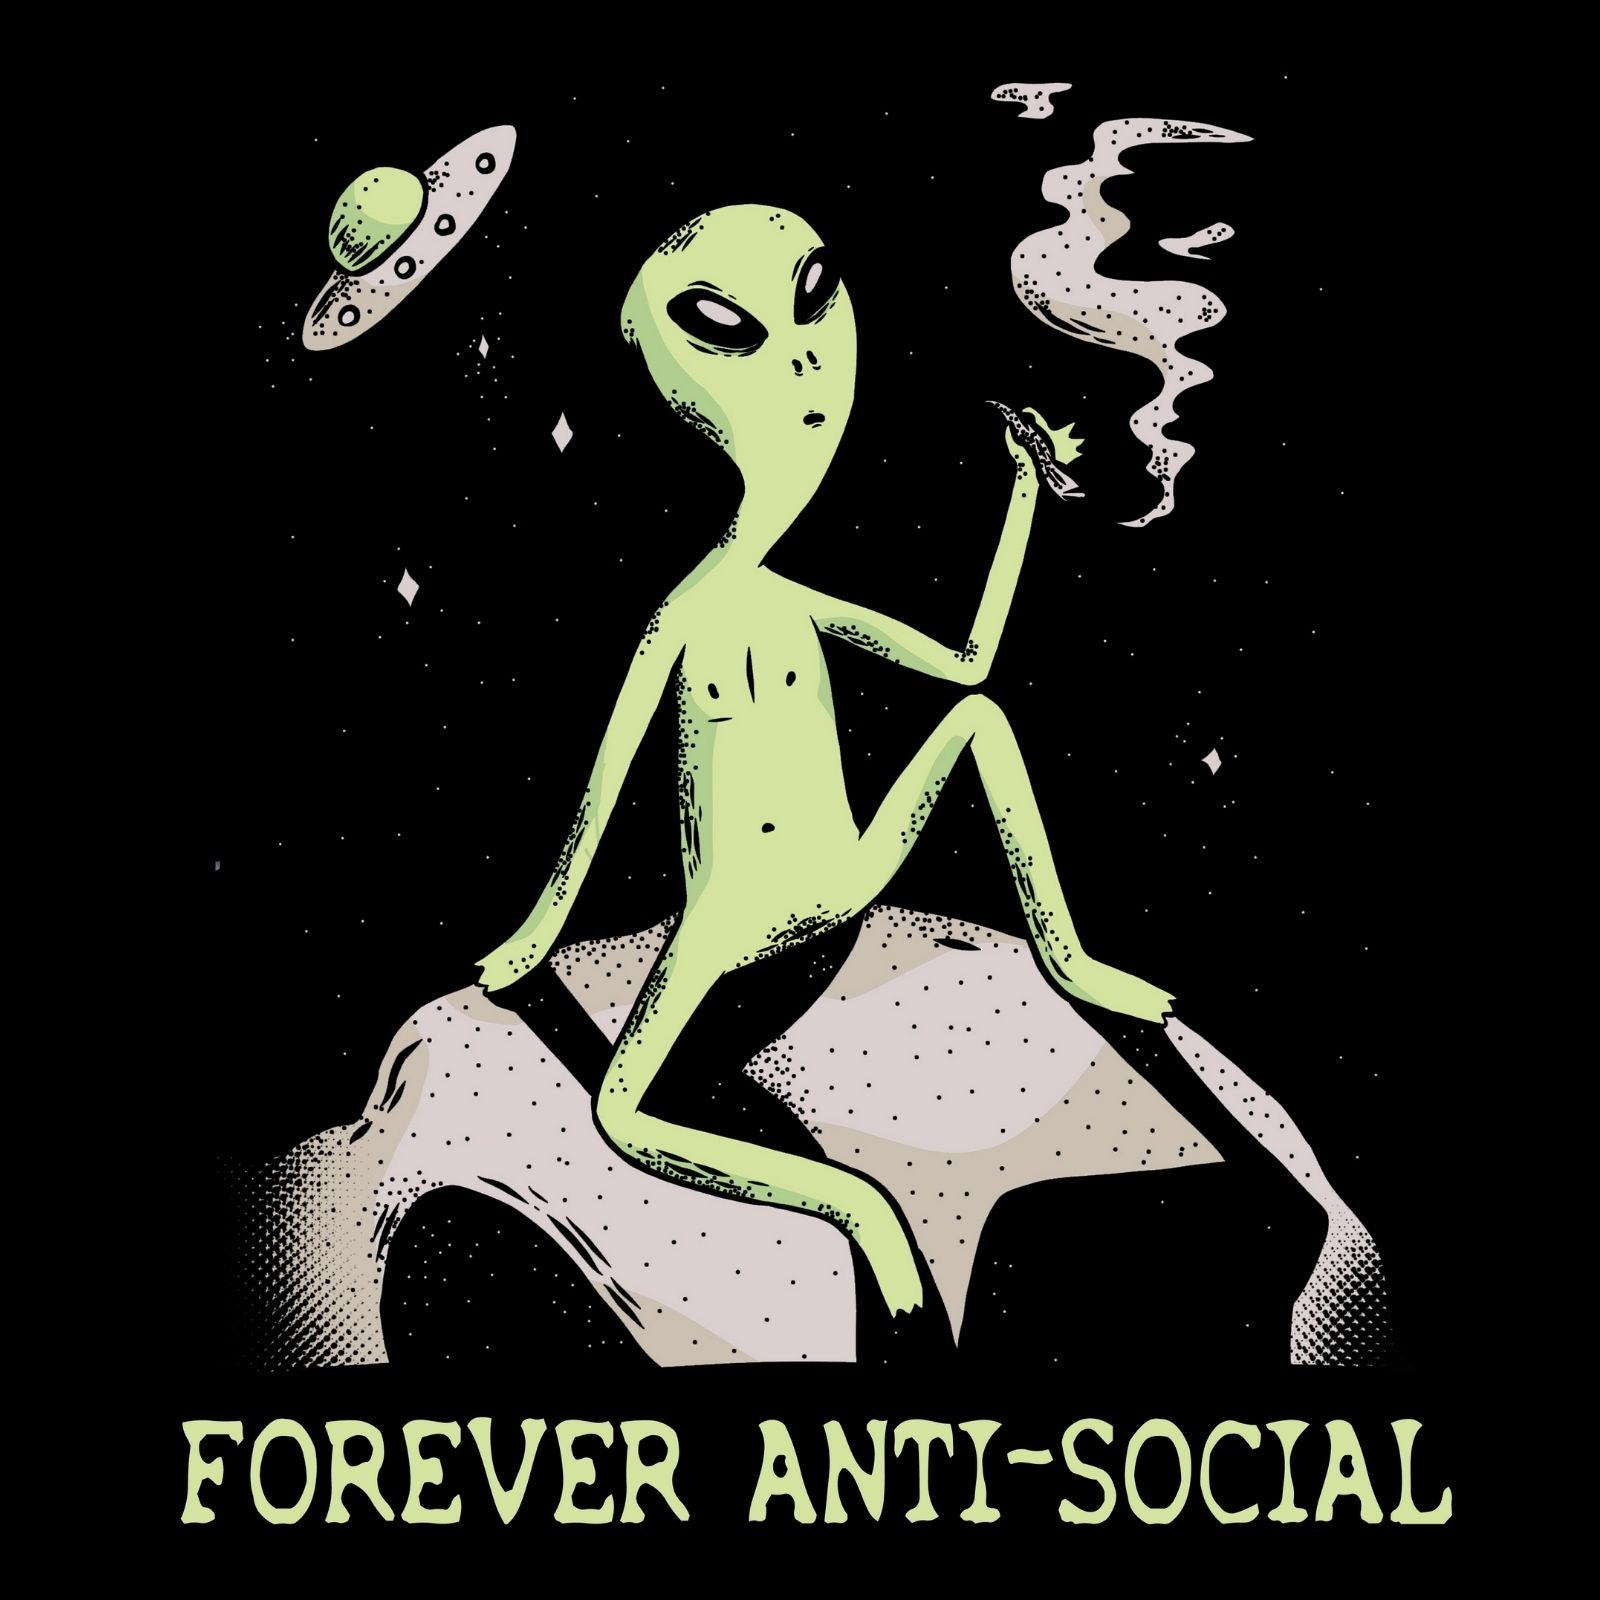 Forever Anti-social - Bastard Graphics